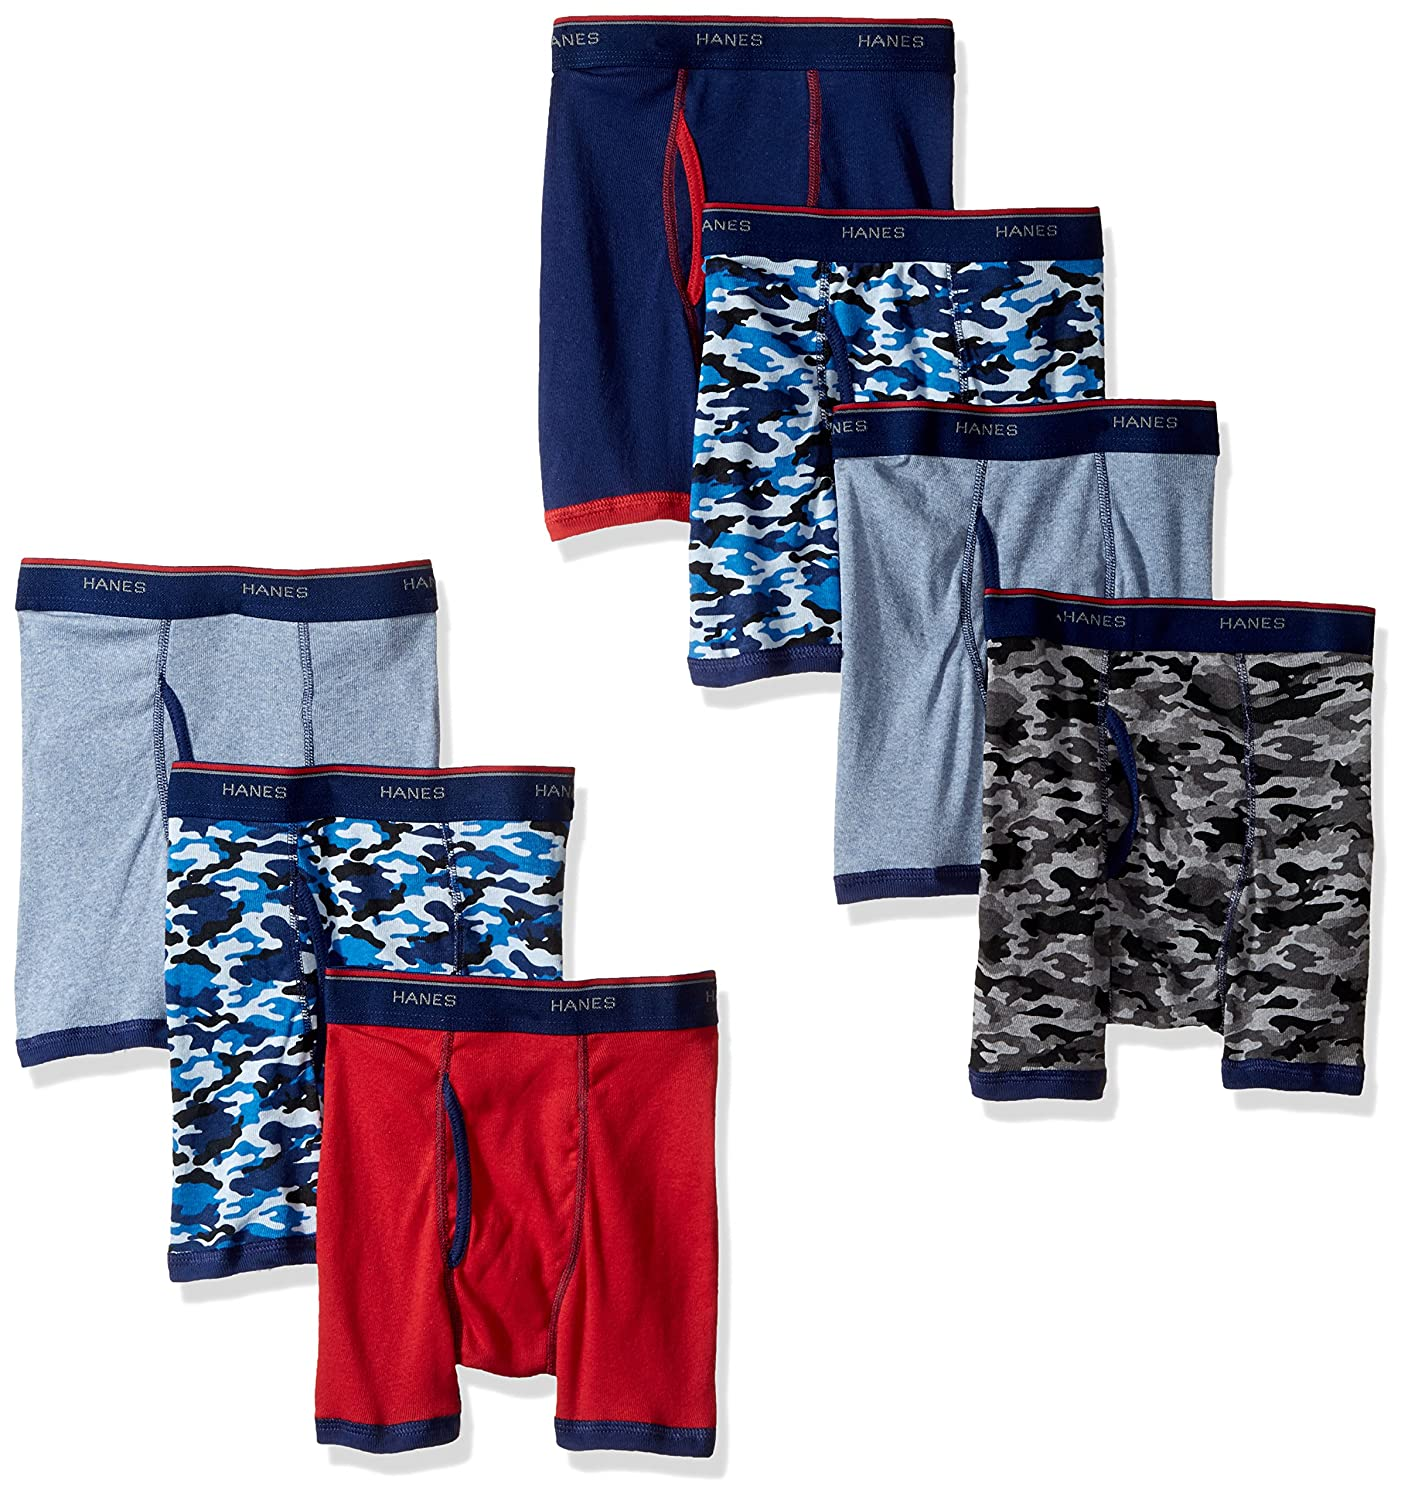 Hanes boys Big Boys Boys Red Label Comfort Flex Sport Ringer Boxer Briefs 7 Pack Hanes Boys 8-20 Underwear B74SR7